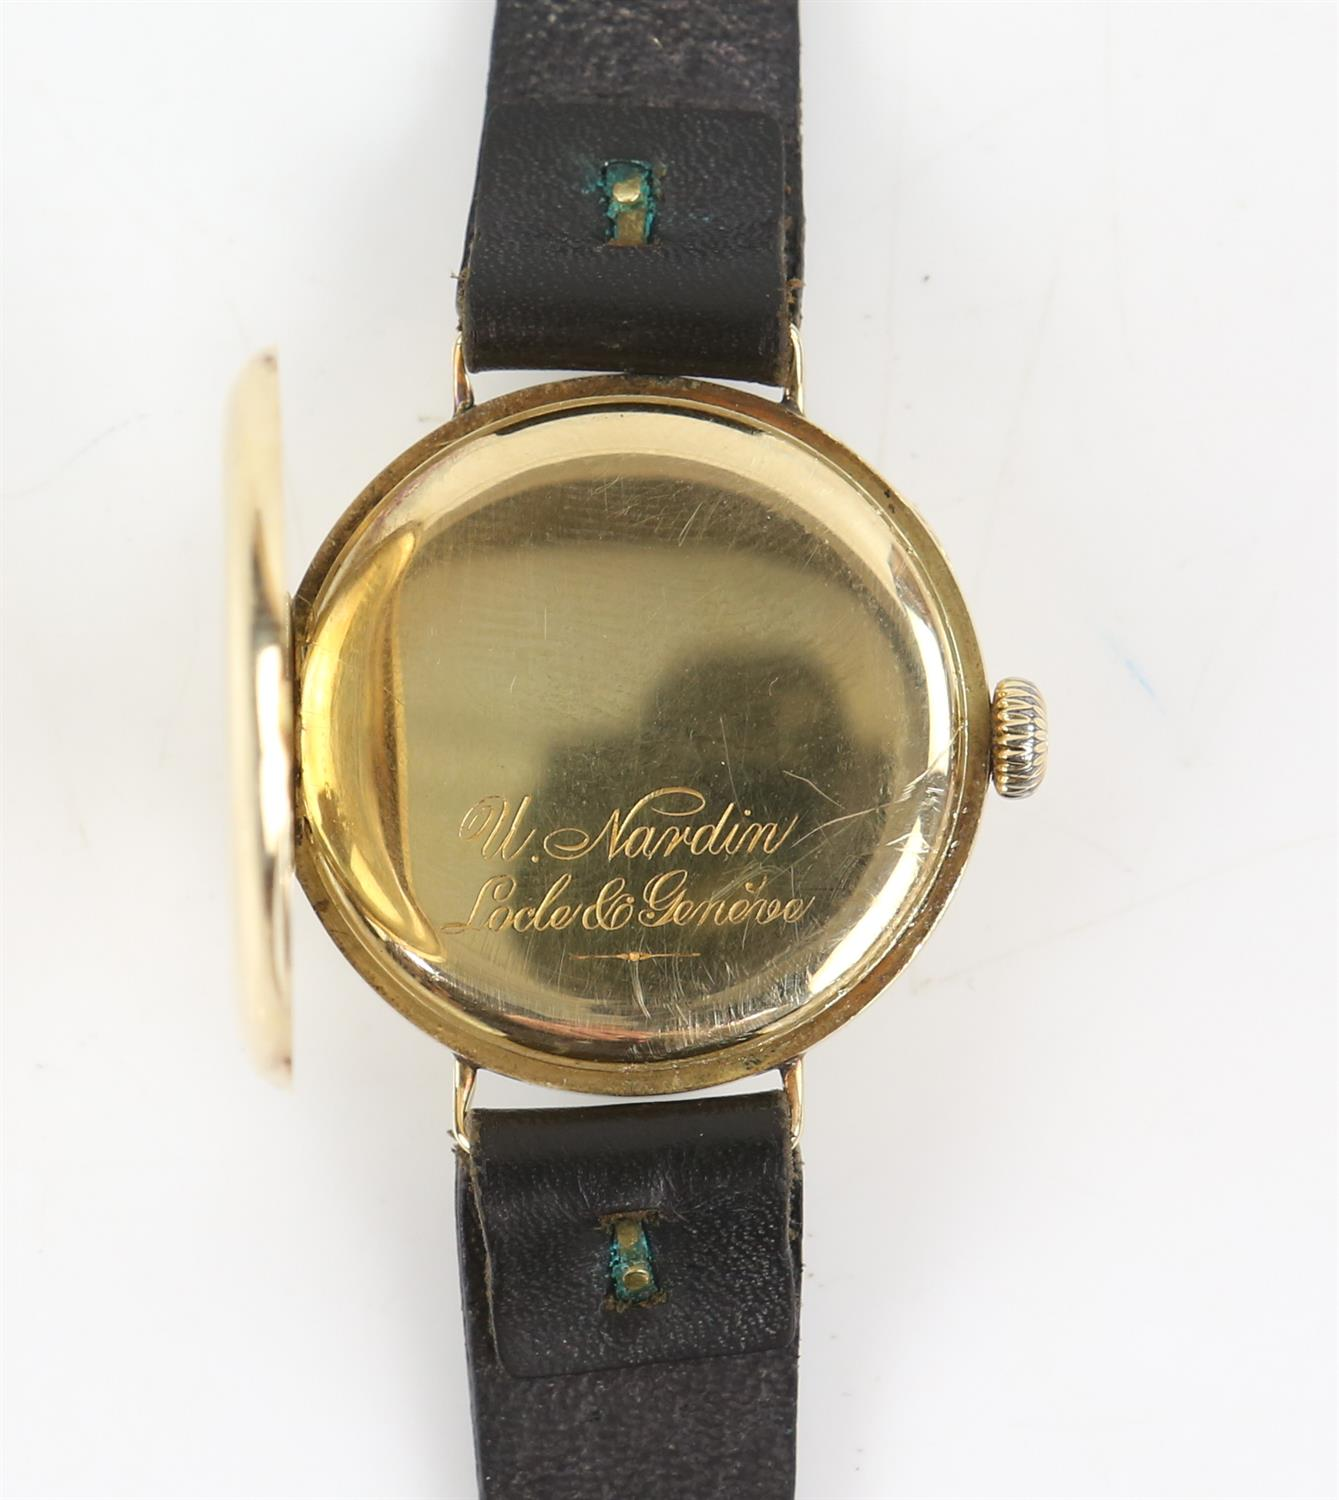 Ulysee Nardin, a Gentleman's gold wristwatch in circular case, the signed white enamel dial with - Image 6 of 10